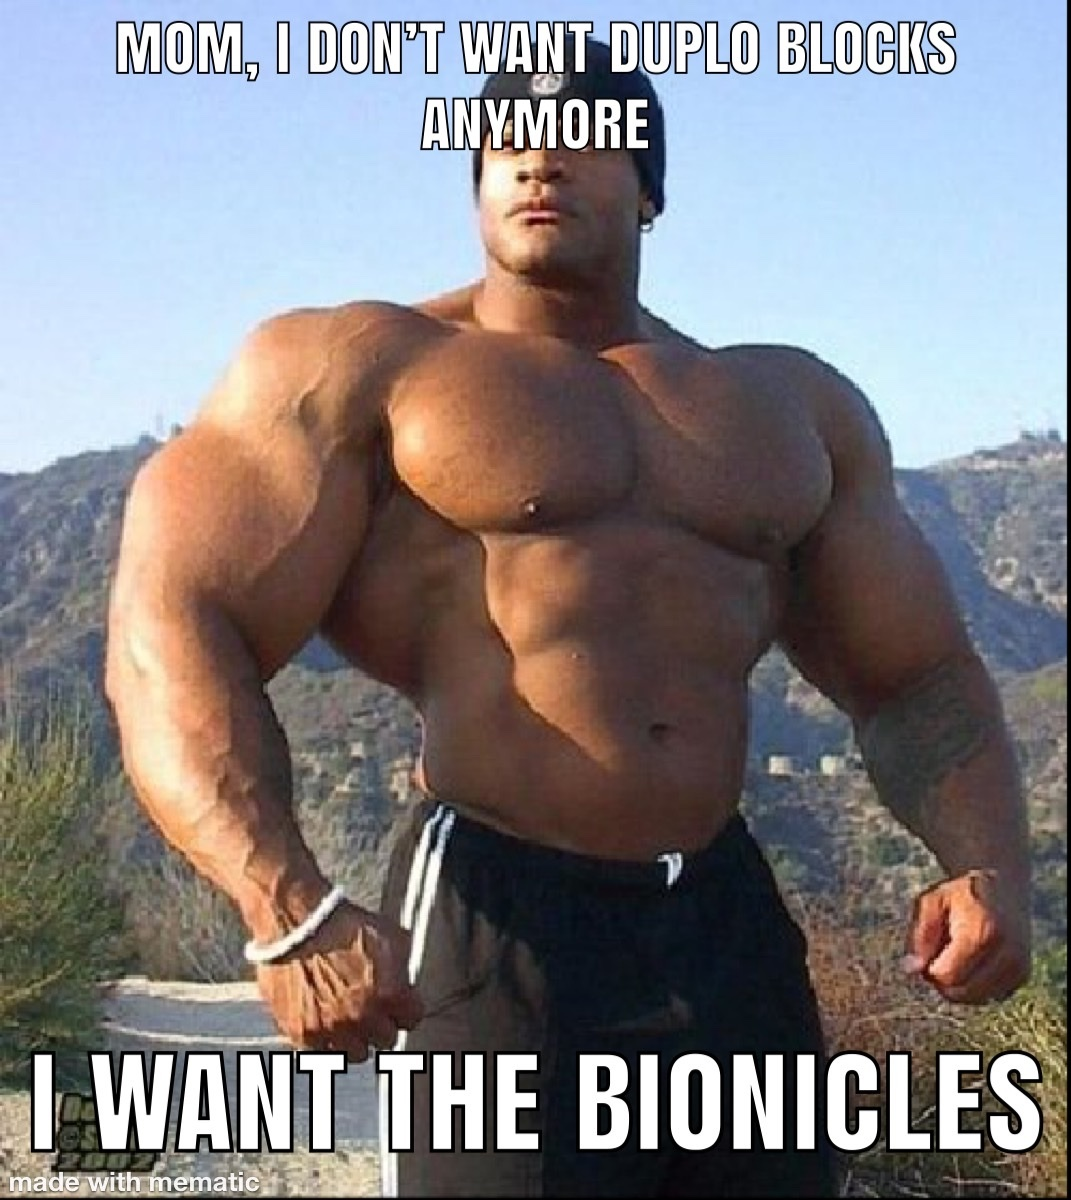 bionicles were fire, change my mind - meme